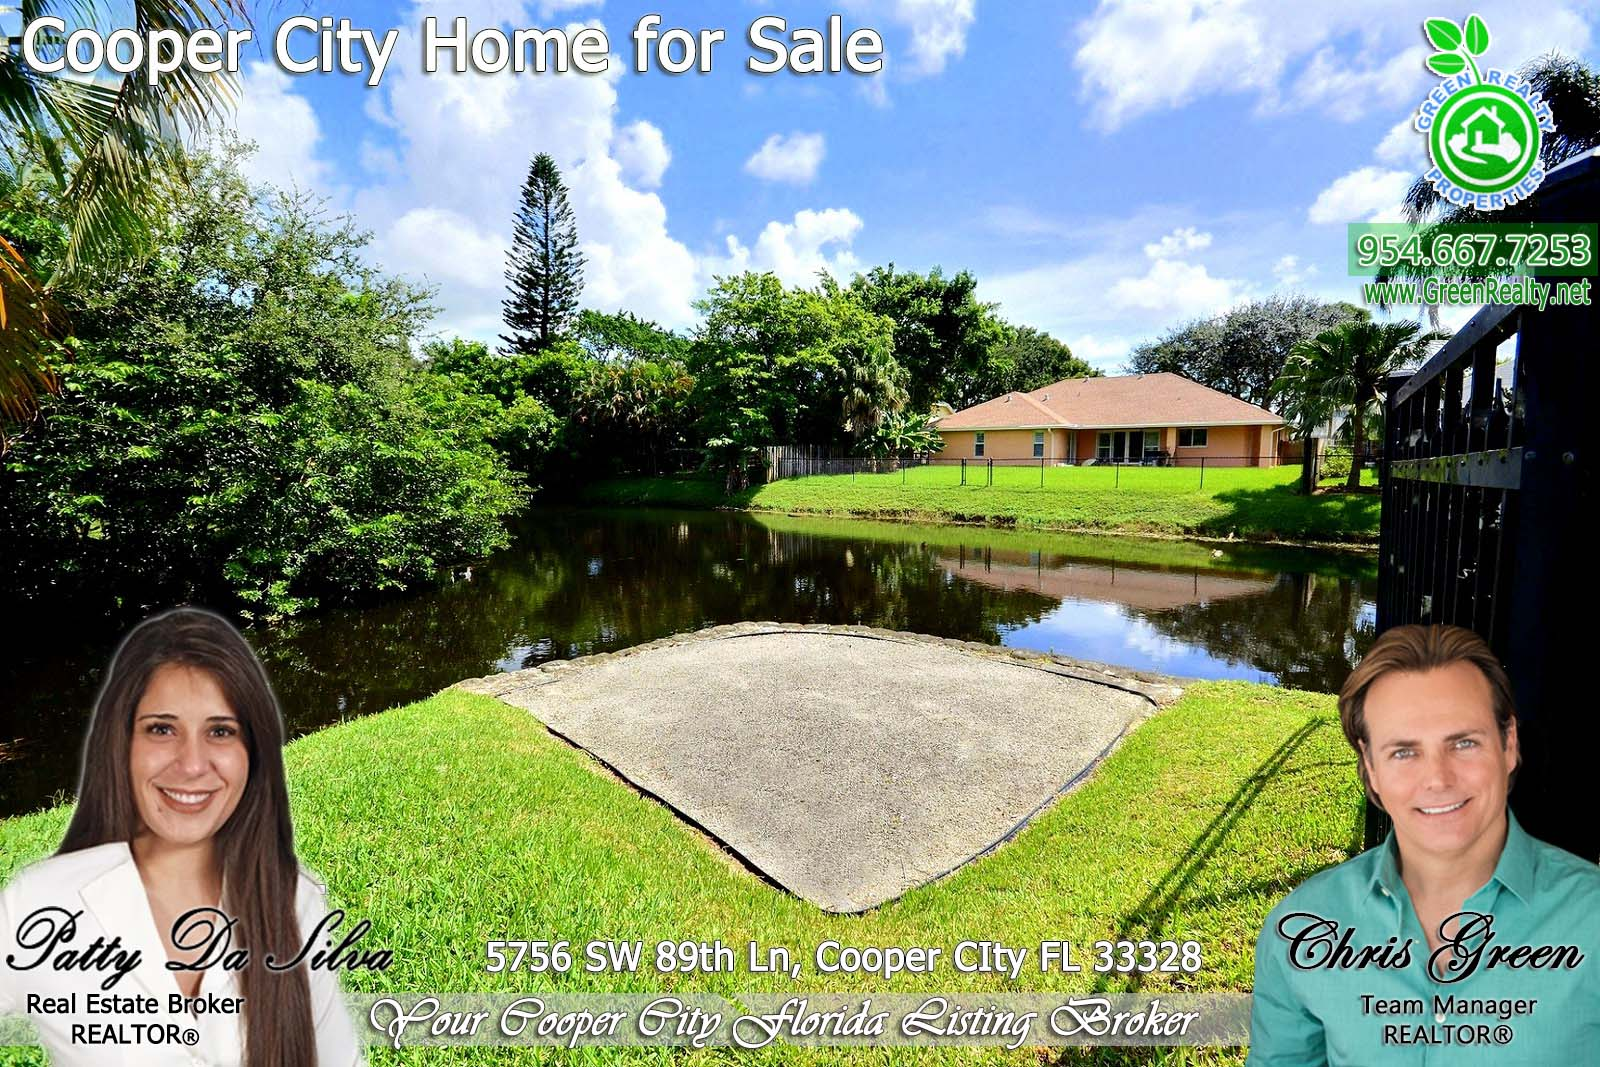 Homes For Sale in Cooper City  - Coopers Pointe